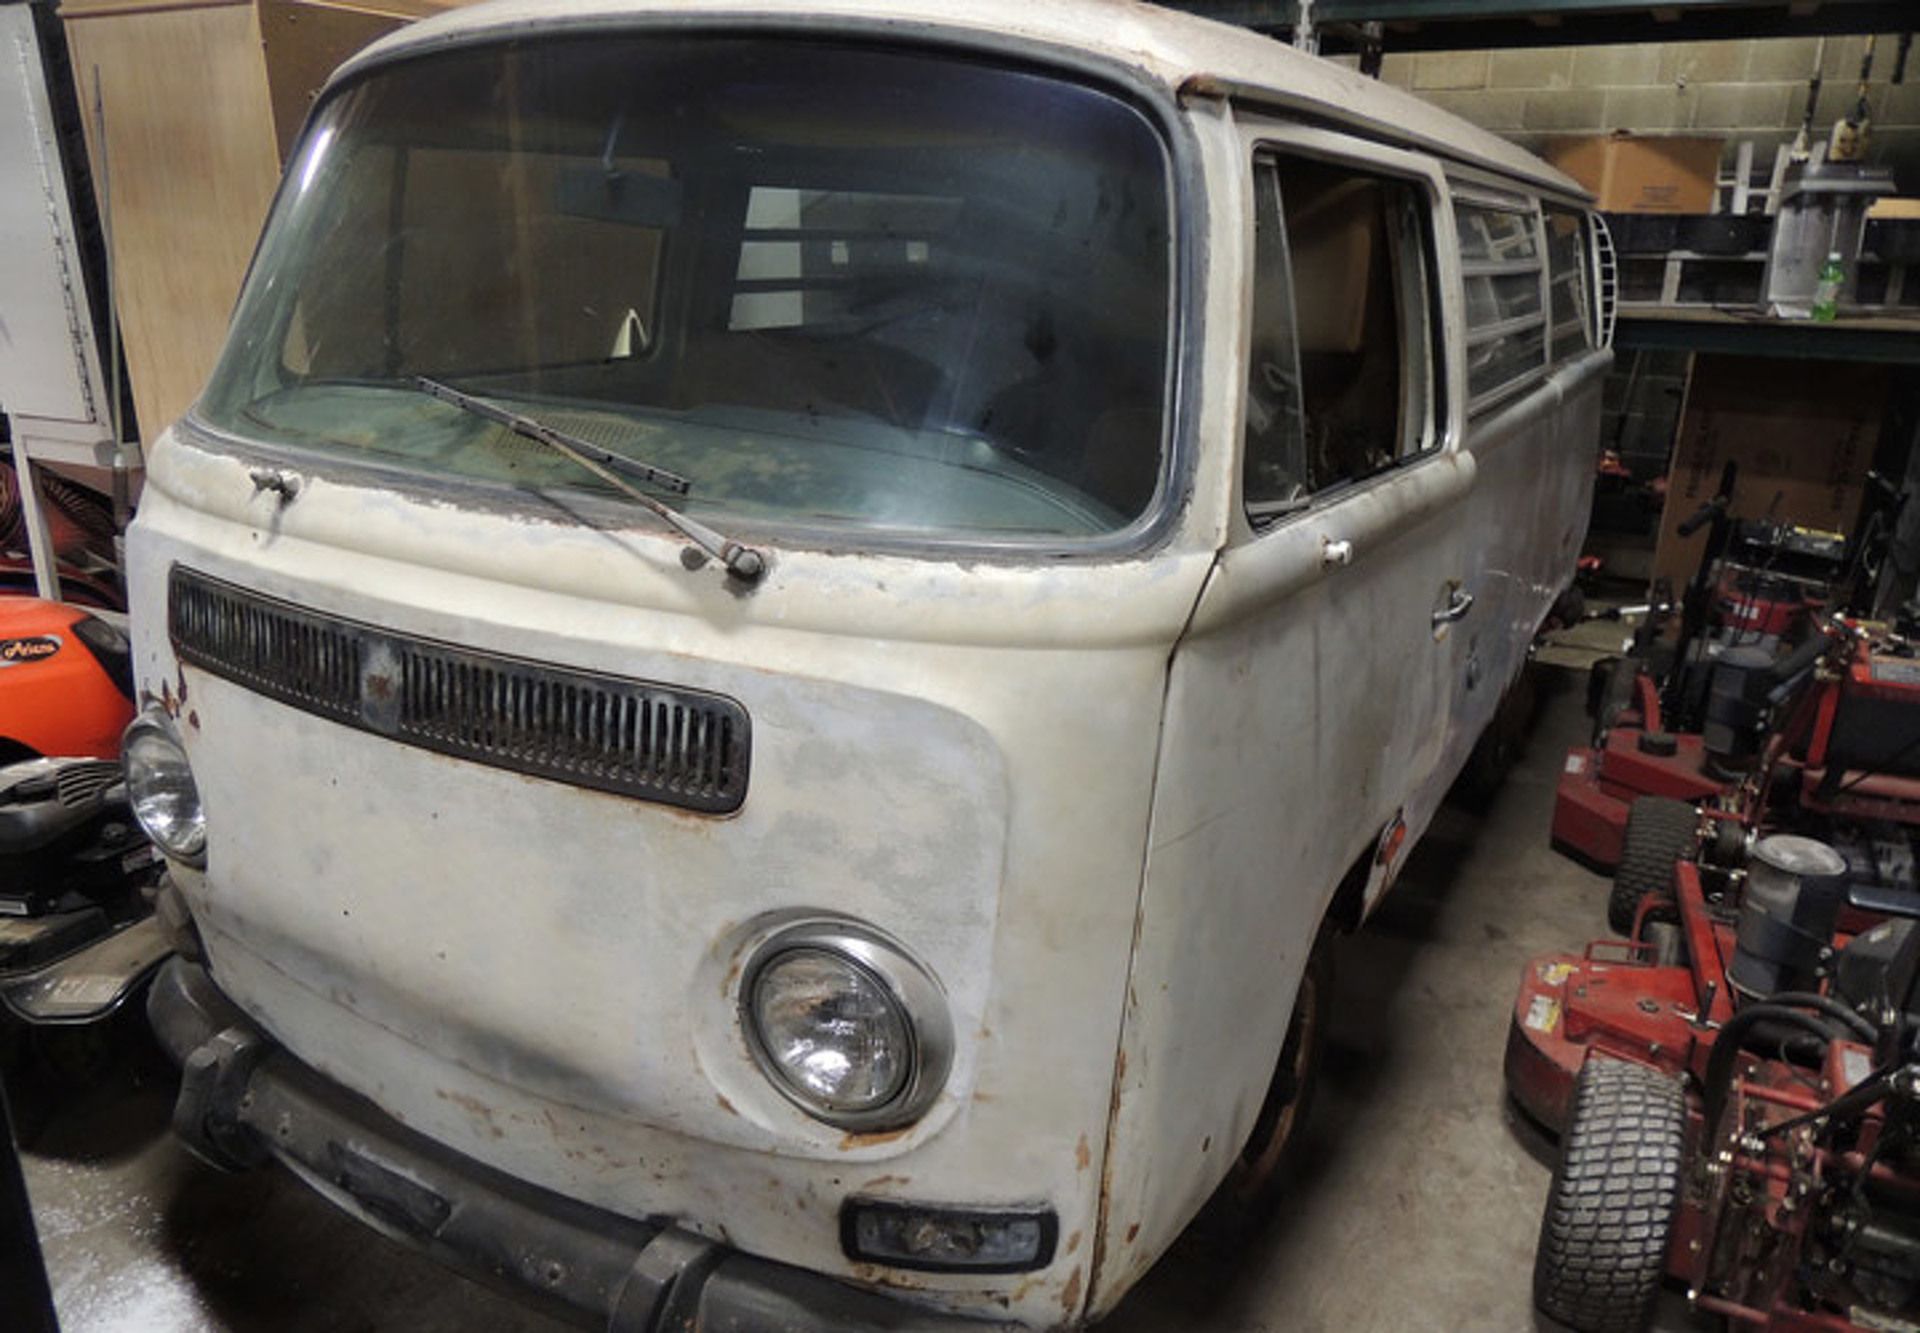 Travel Channel Host Just Bought Dr. Jack Kevorkian's Volkswagen Van